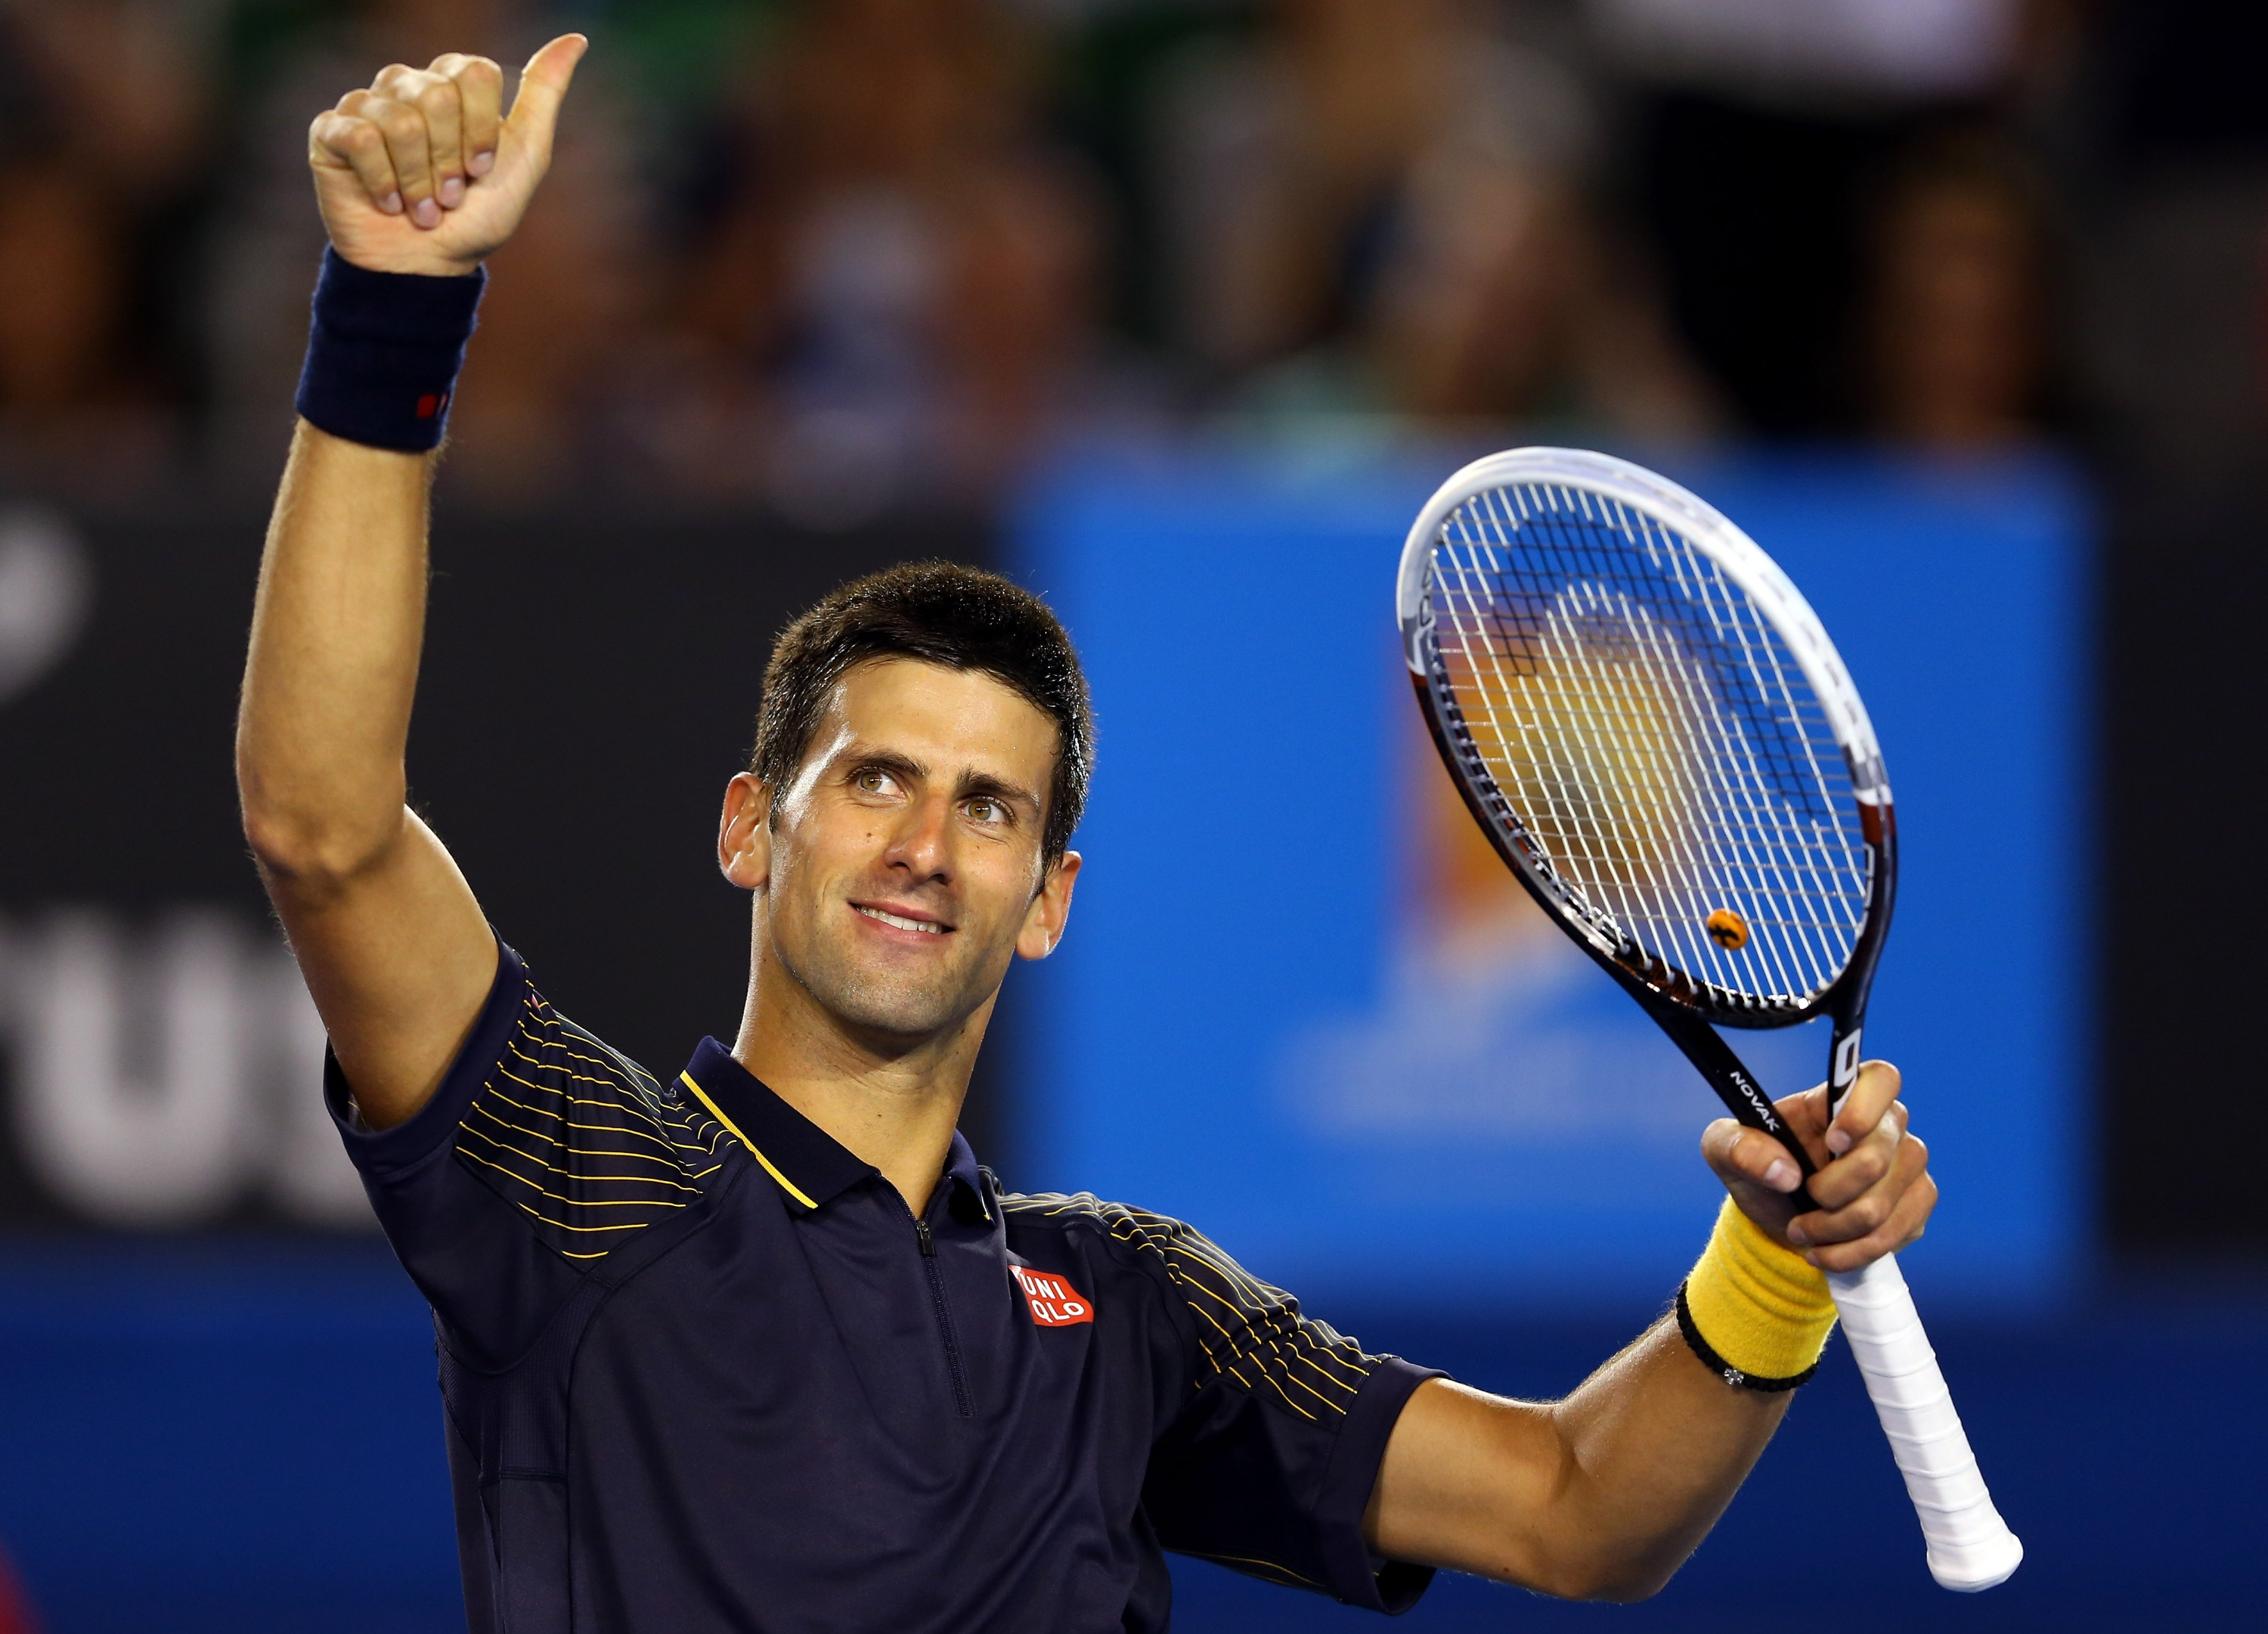 Djokovic wins his second Monte-Carlo Masters